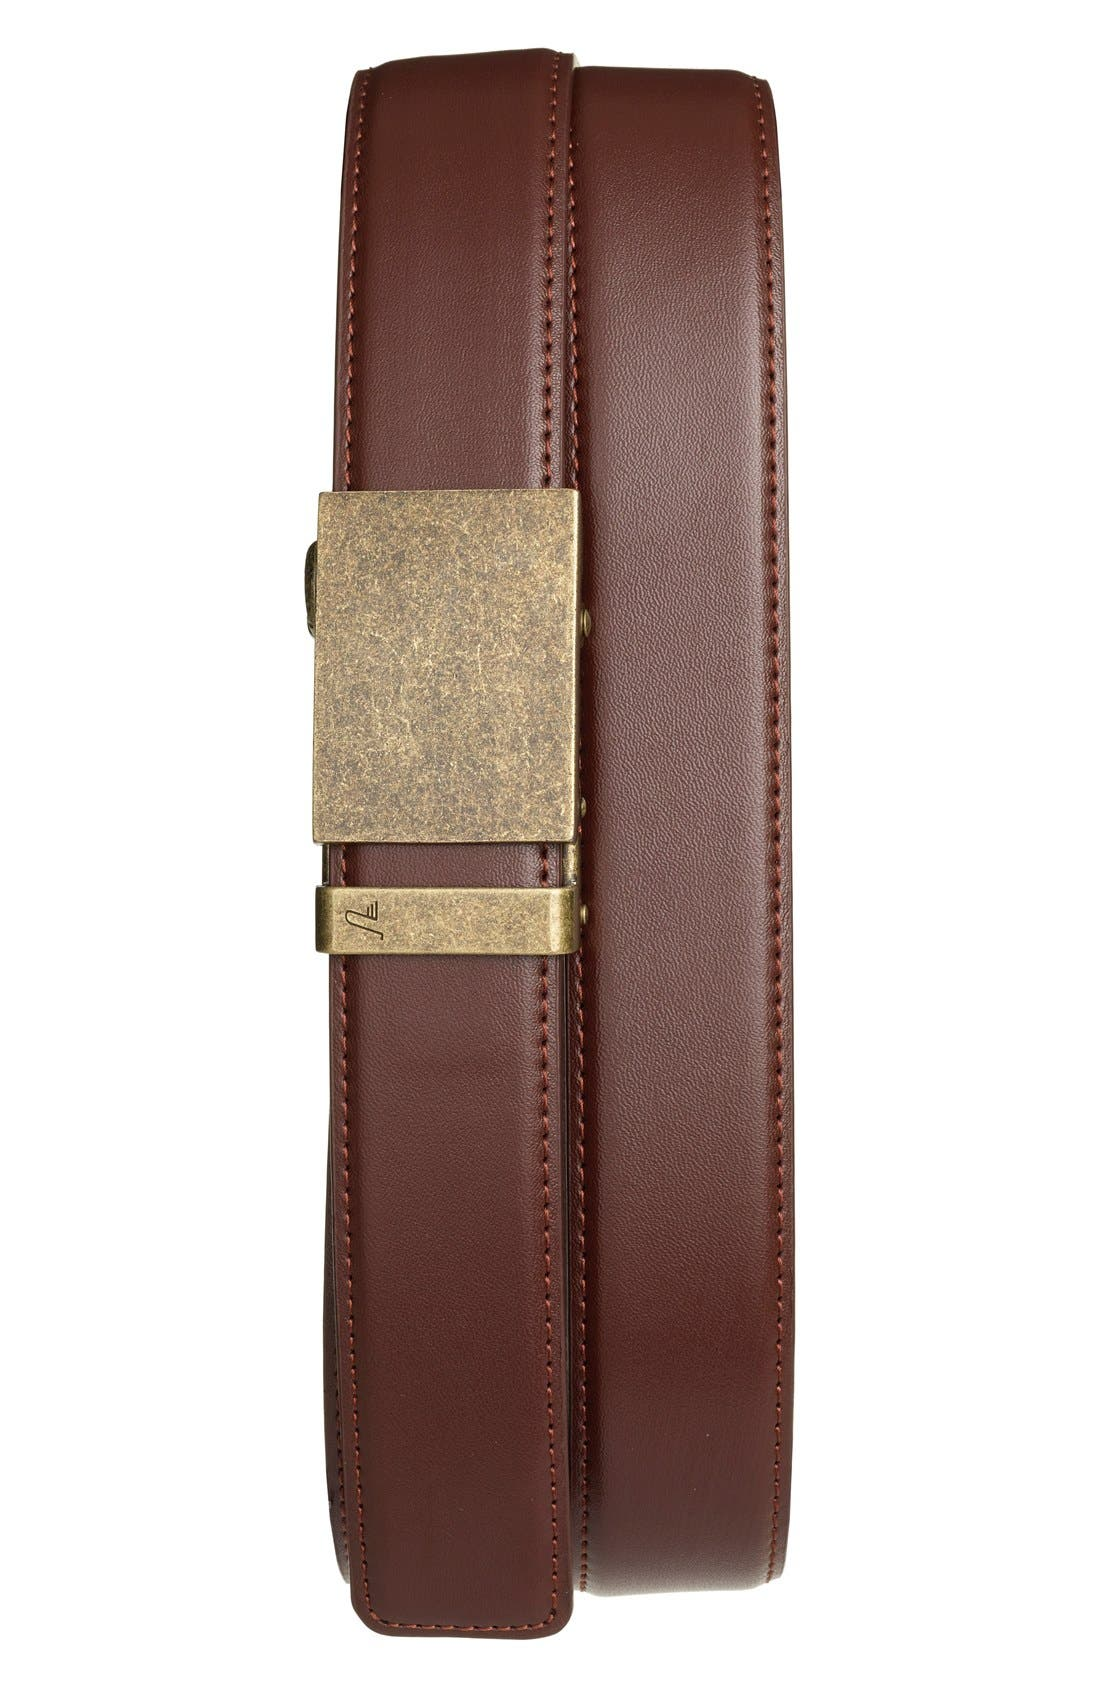 MISSION BELT Bronze Leather Belt